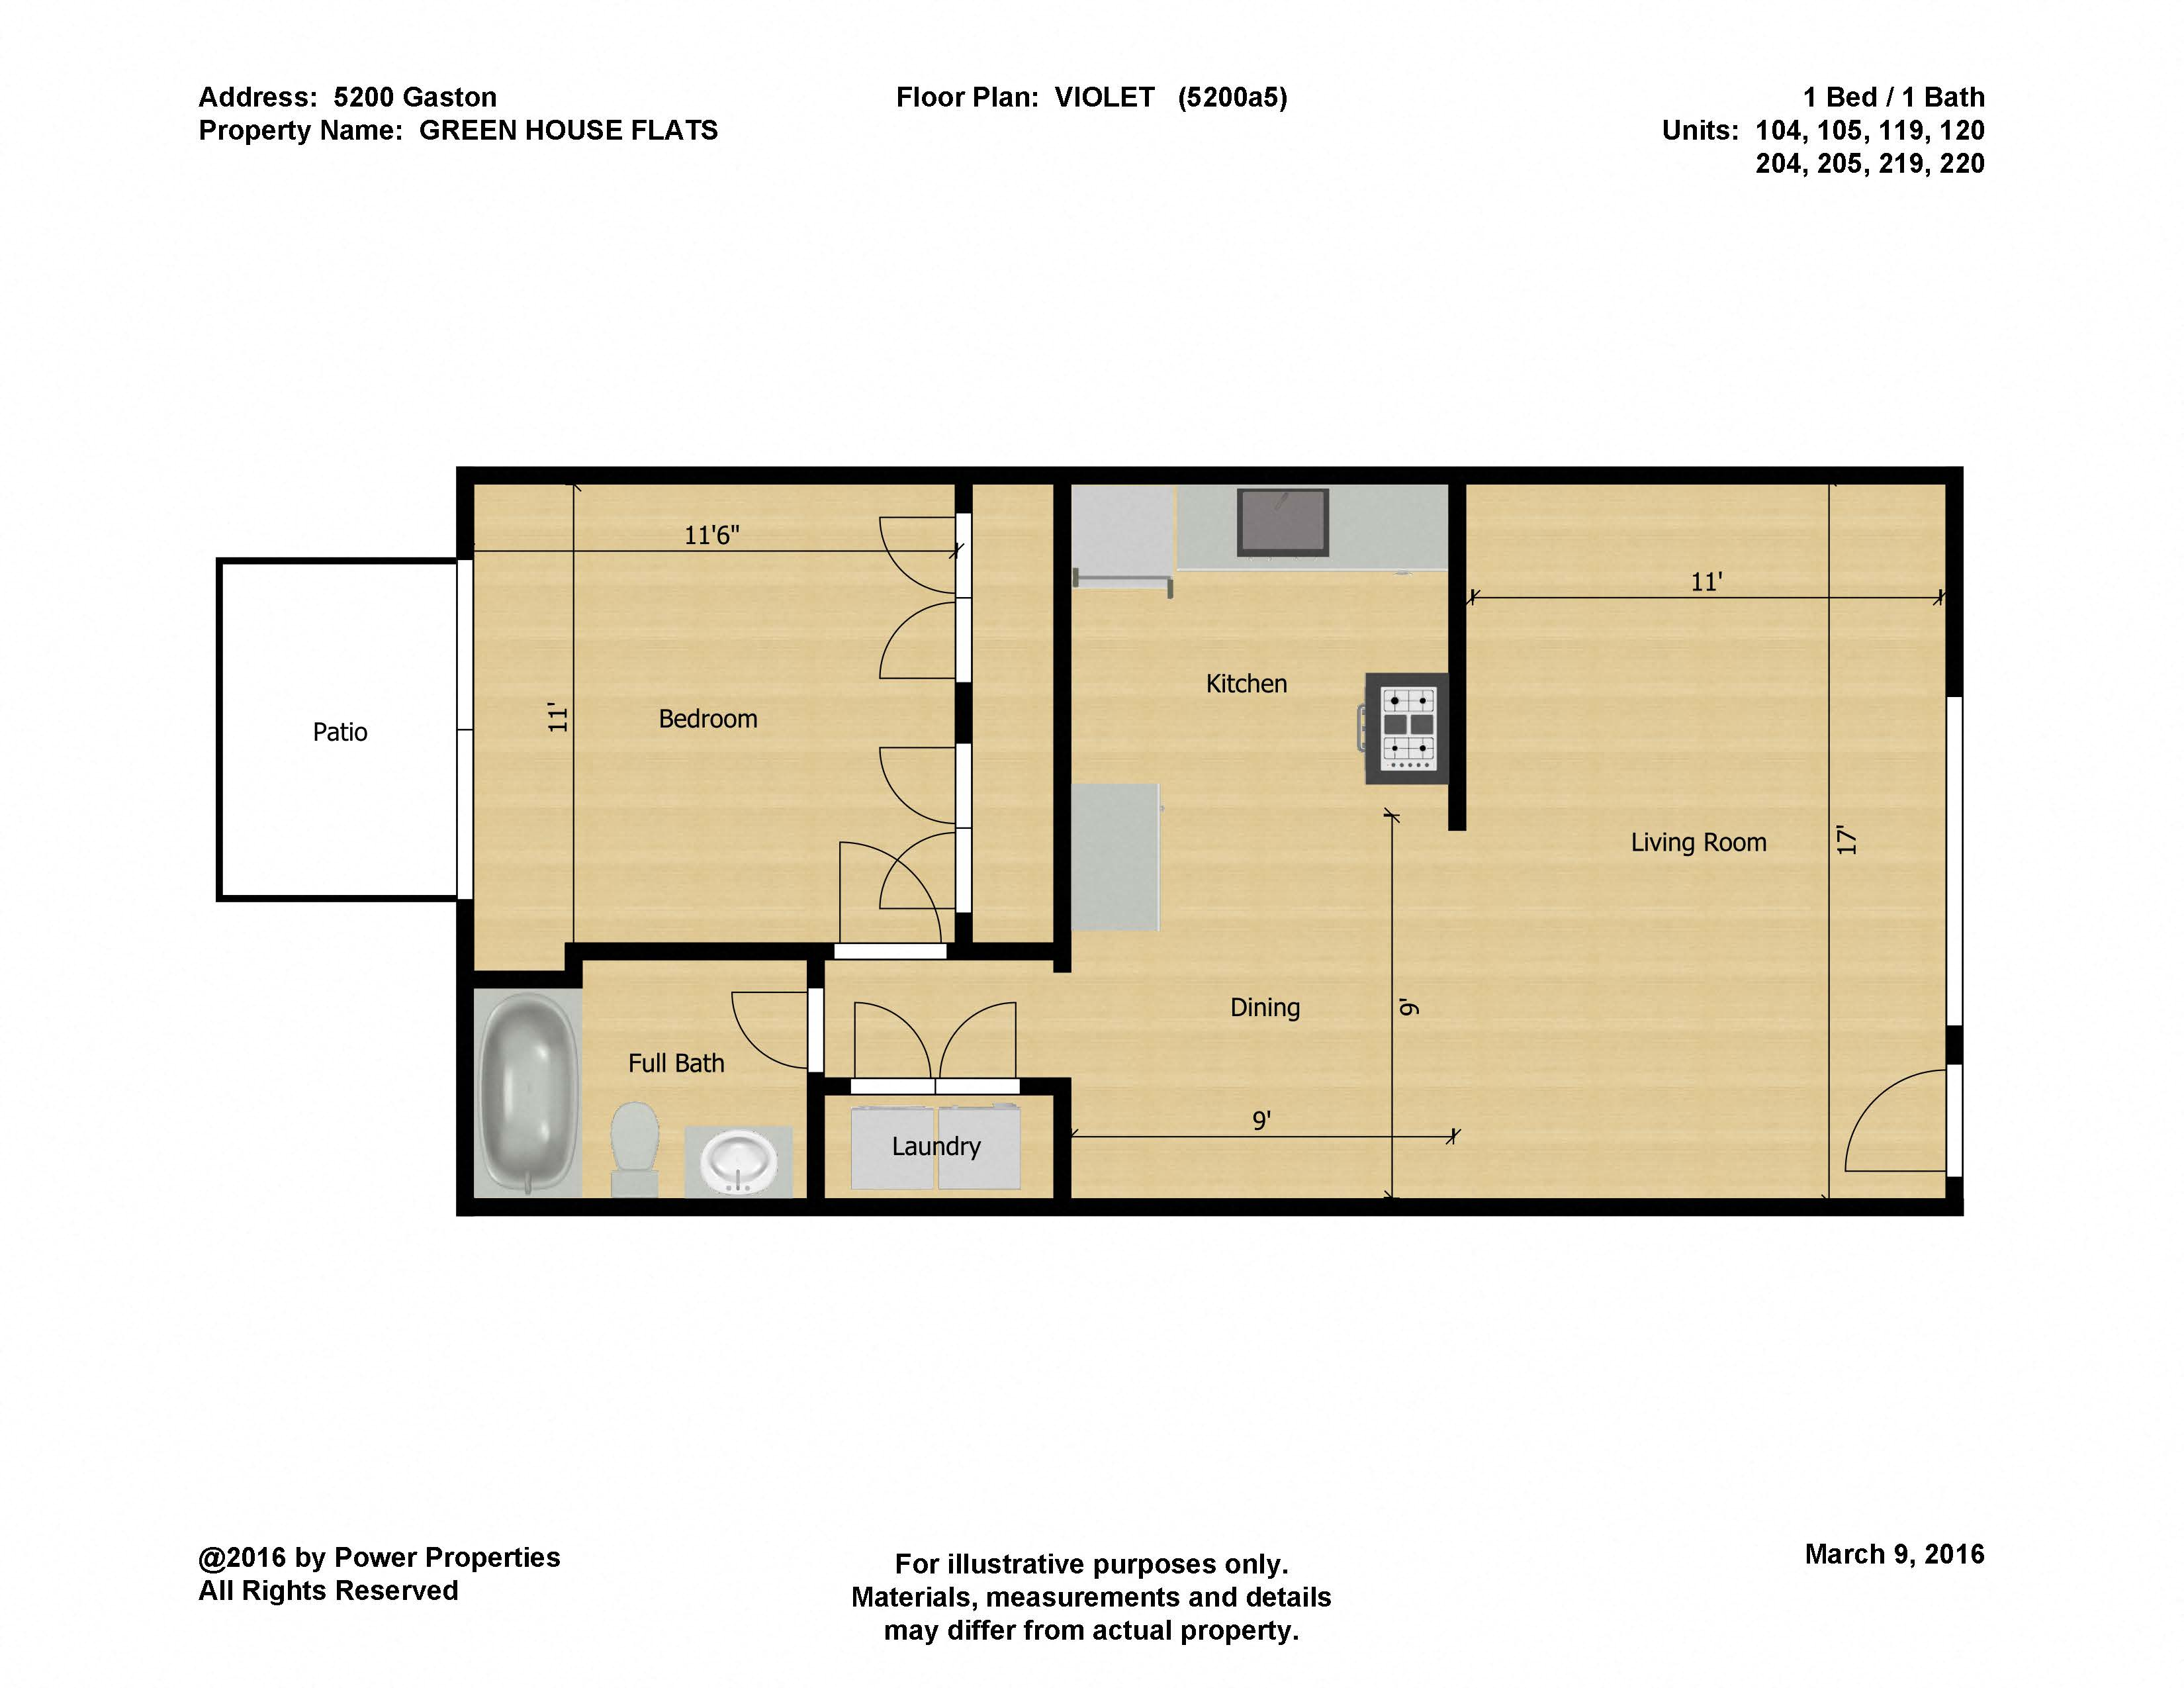 Floor Plans Of Green House Flats In Dallas Tx